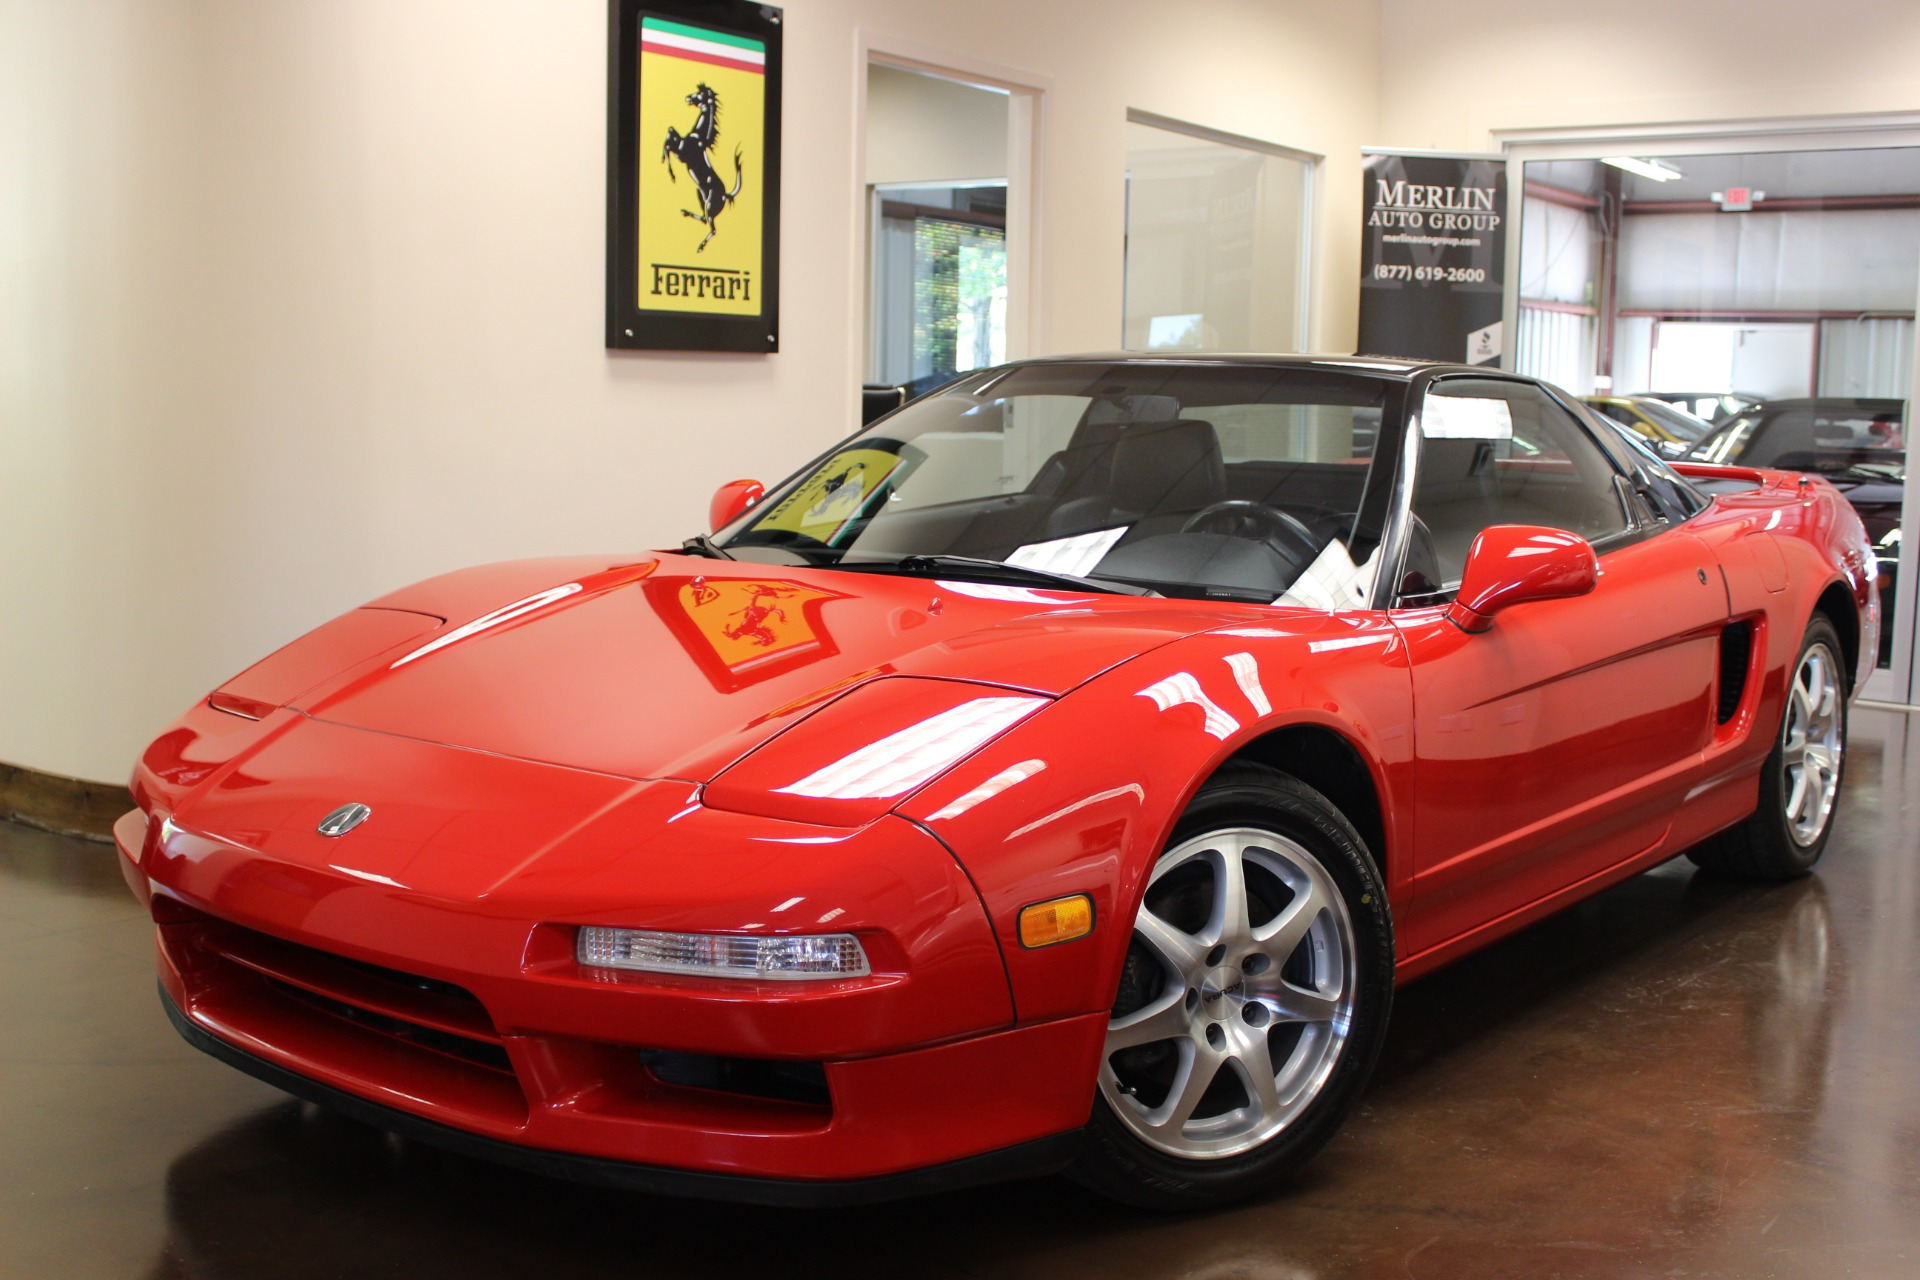 Used Acura Nsx For Sale >> Used 1992 Acura NSX Red Coupe V6 3L Manual leather All Original for sale - Acura NSX 1992 for ...